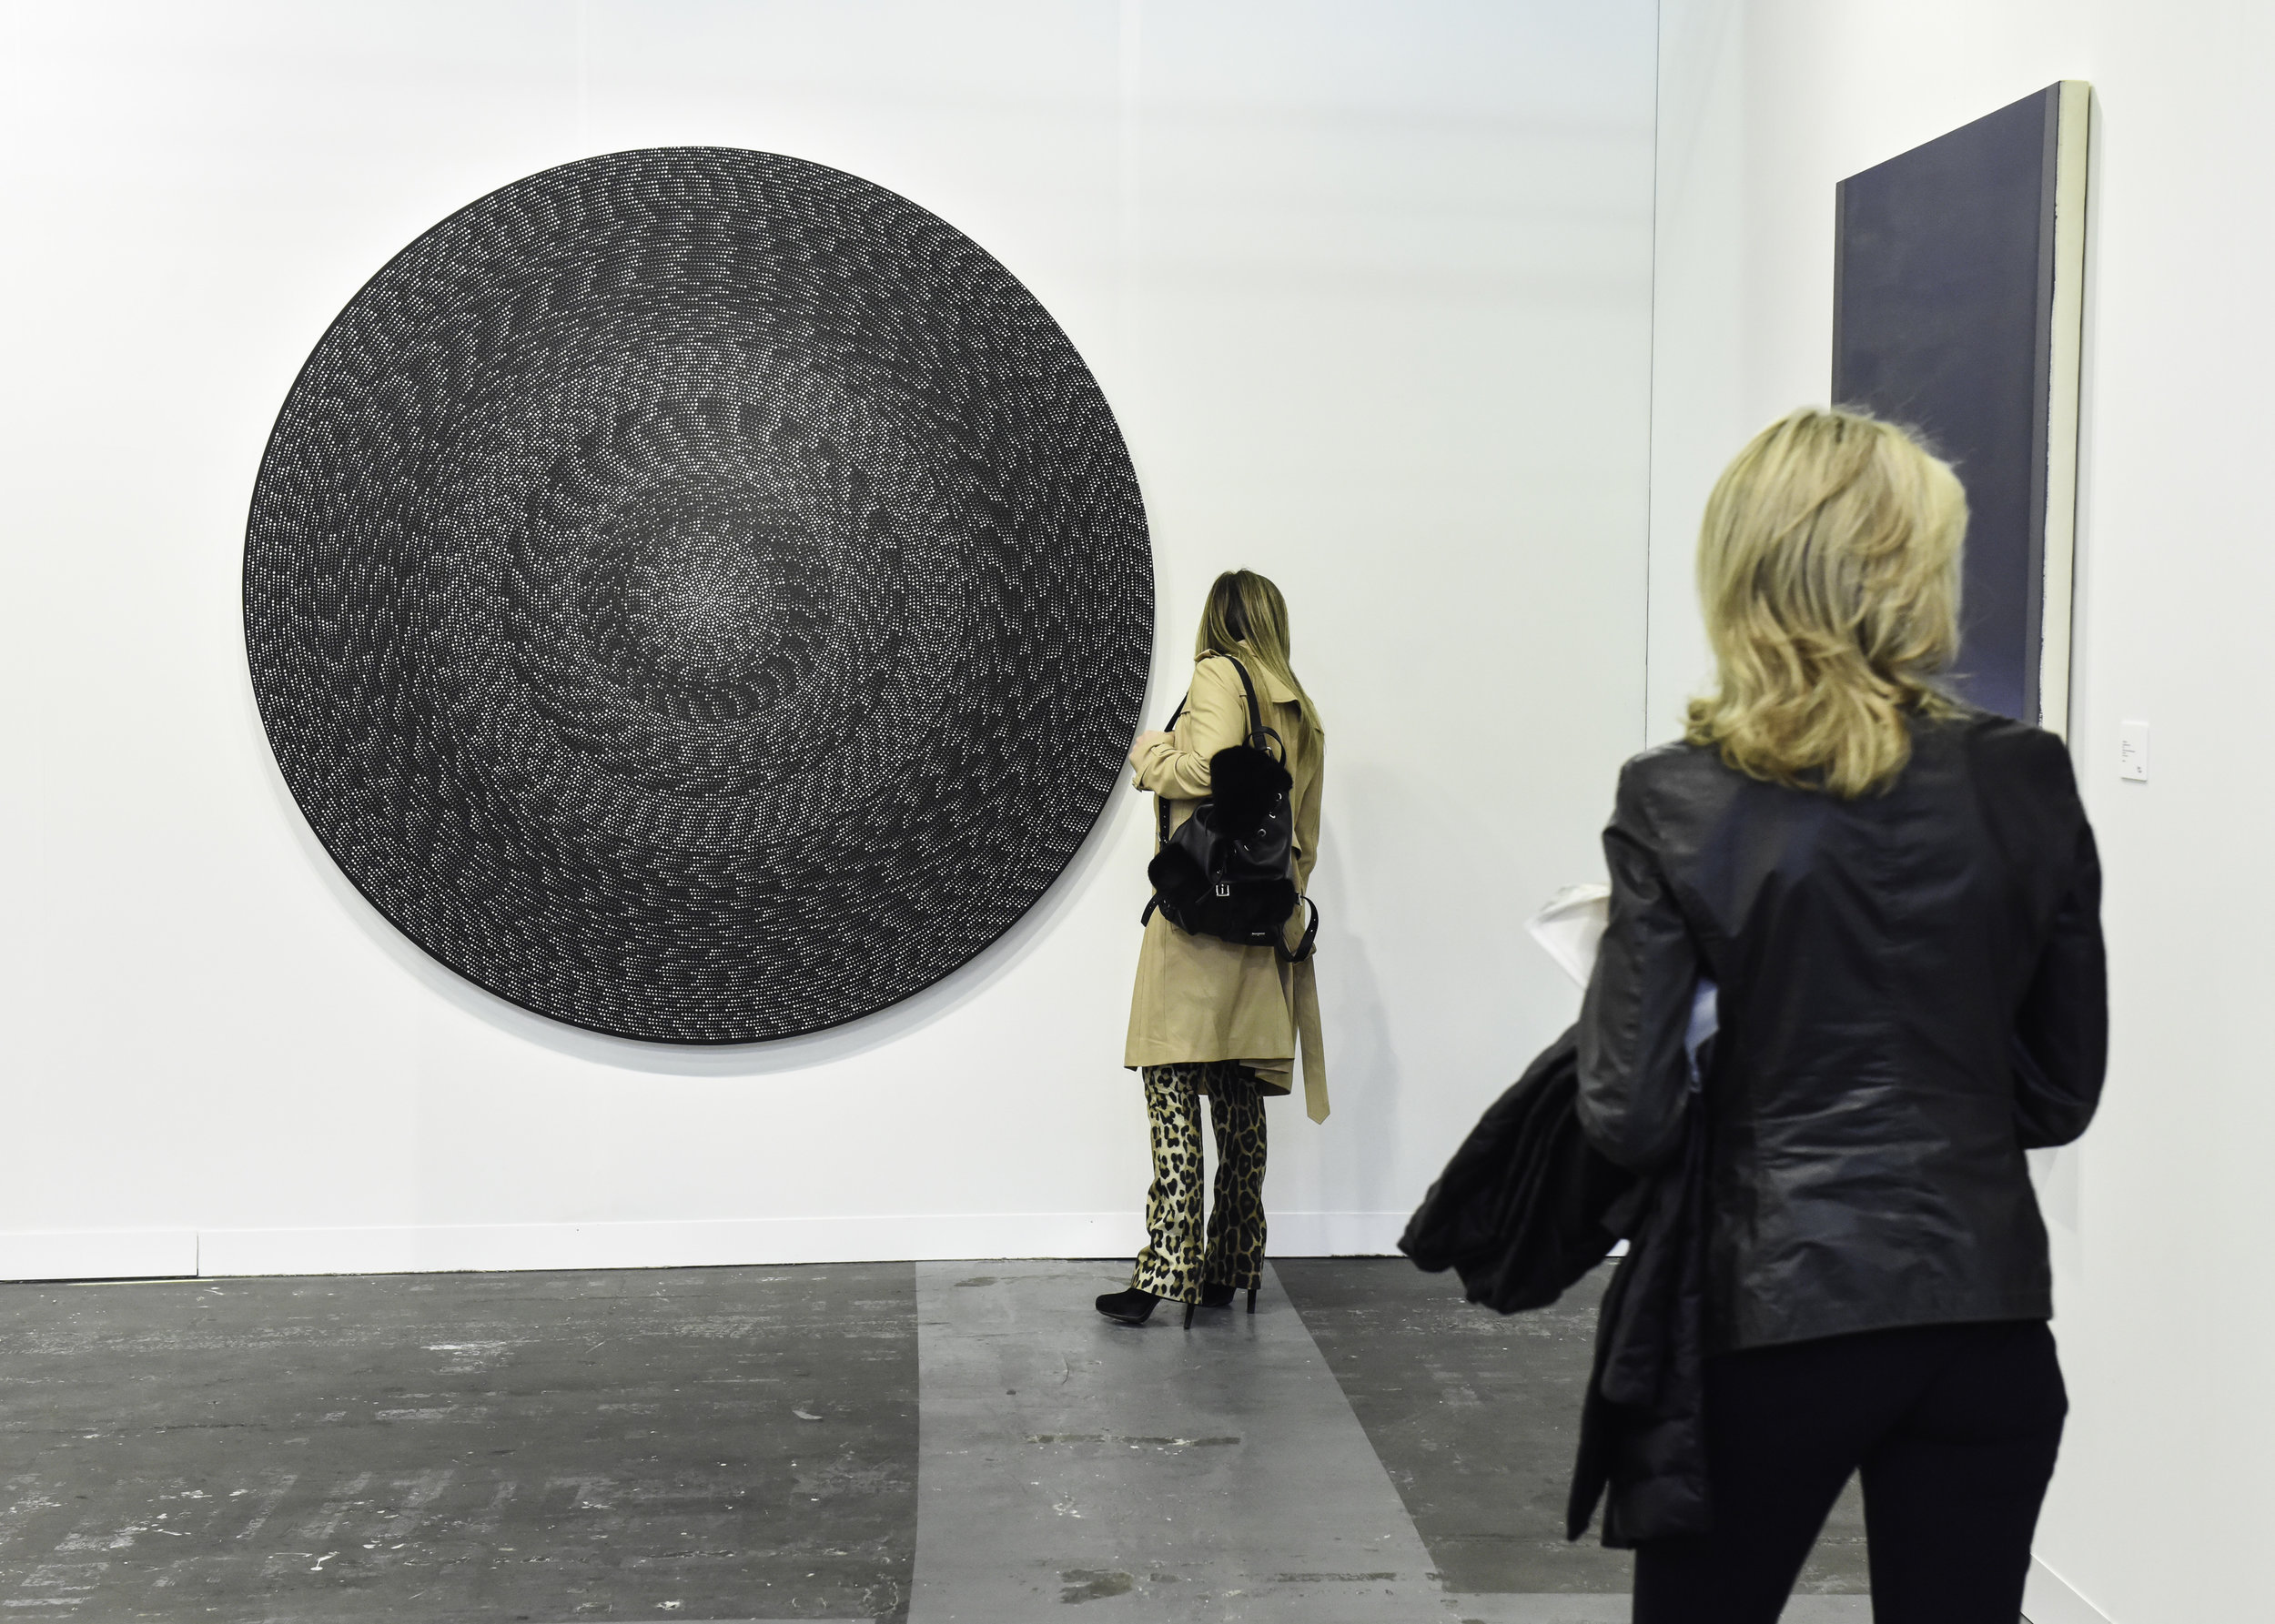 Photograph by BFA   Courtesy of The Armory Show